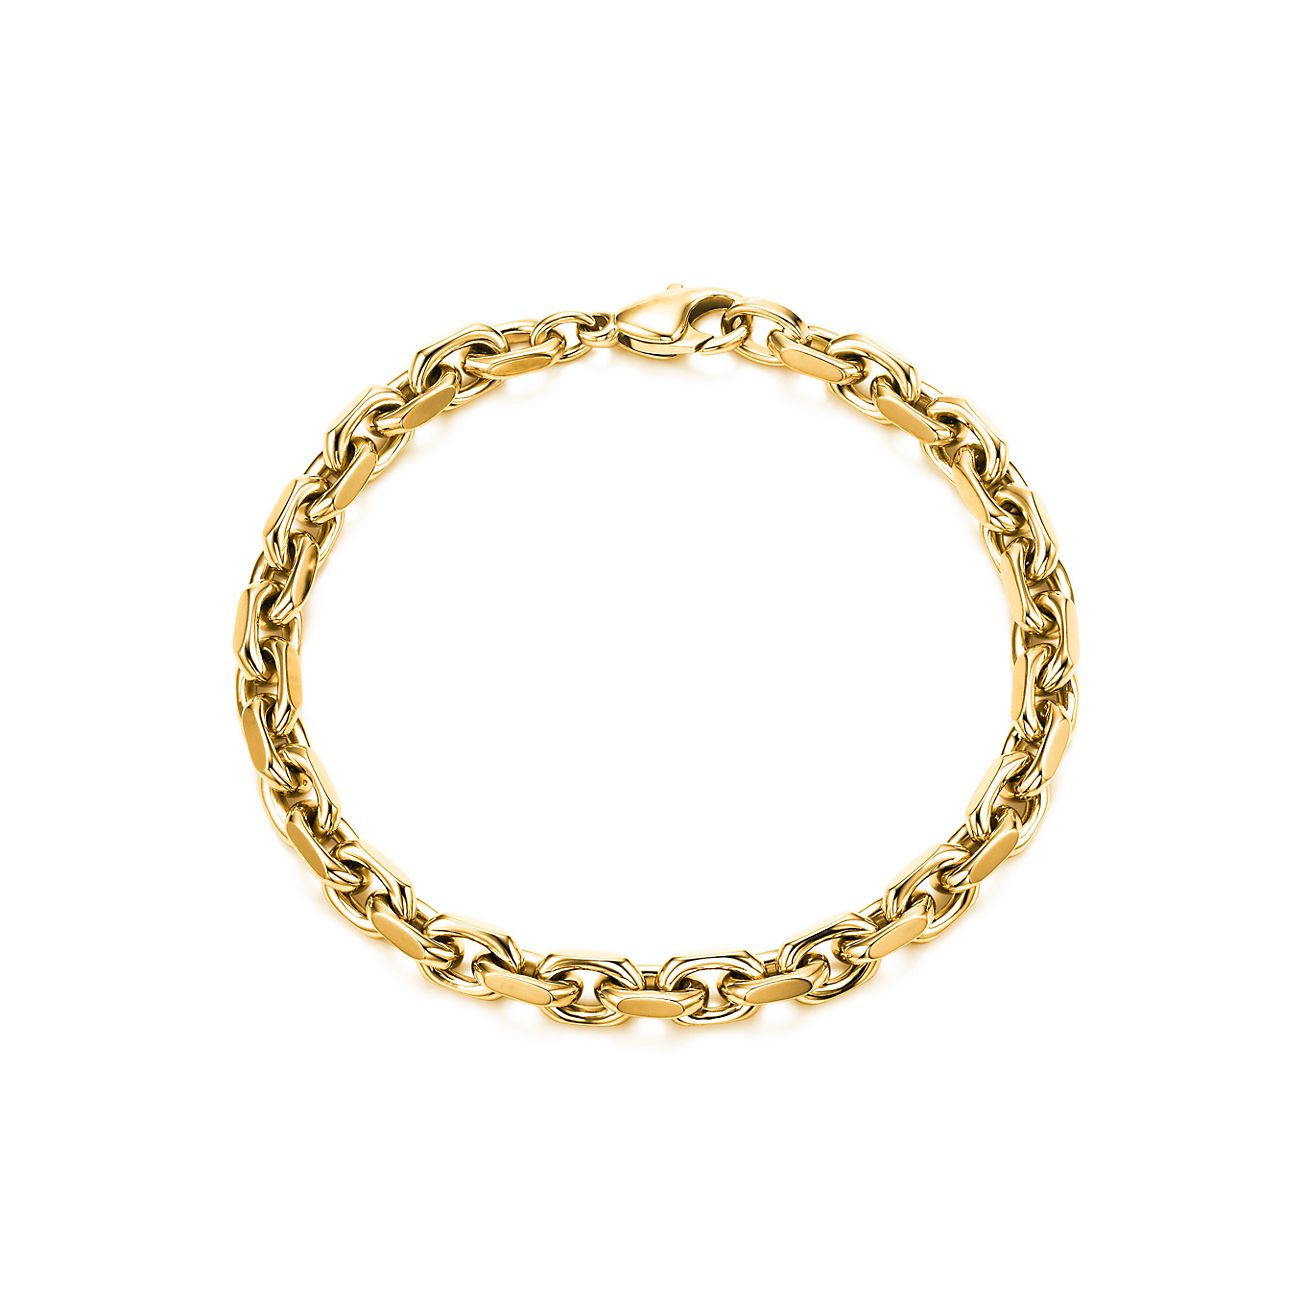 sparkles bijoux products with nitsa pated gold tennis bracelet fashion beloved crystal contemporary cubic bangle circle circles link zirconia goldtone cz bangles